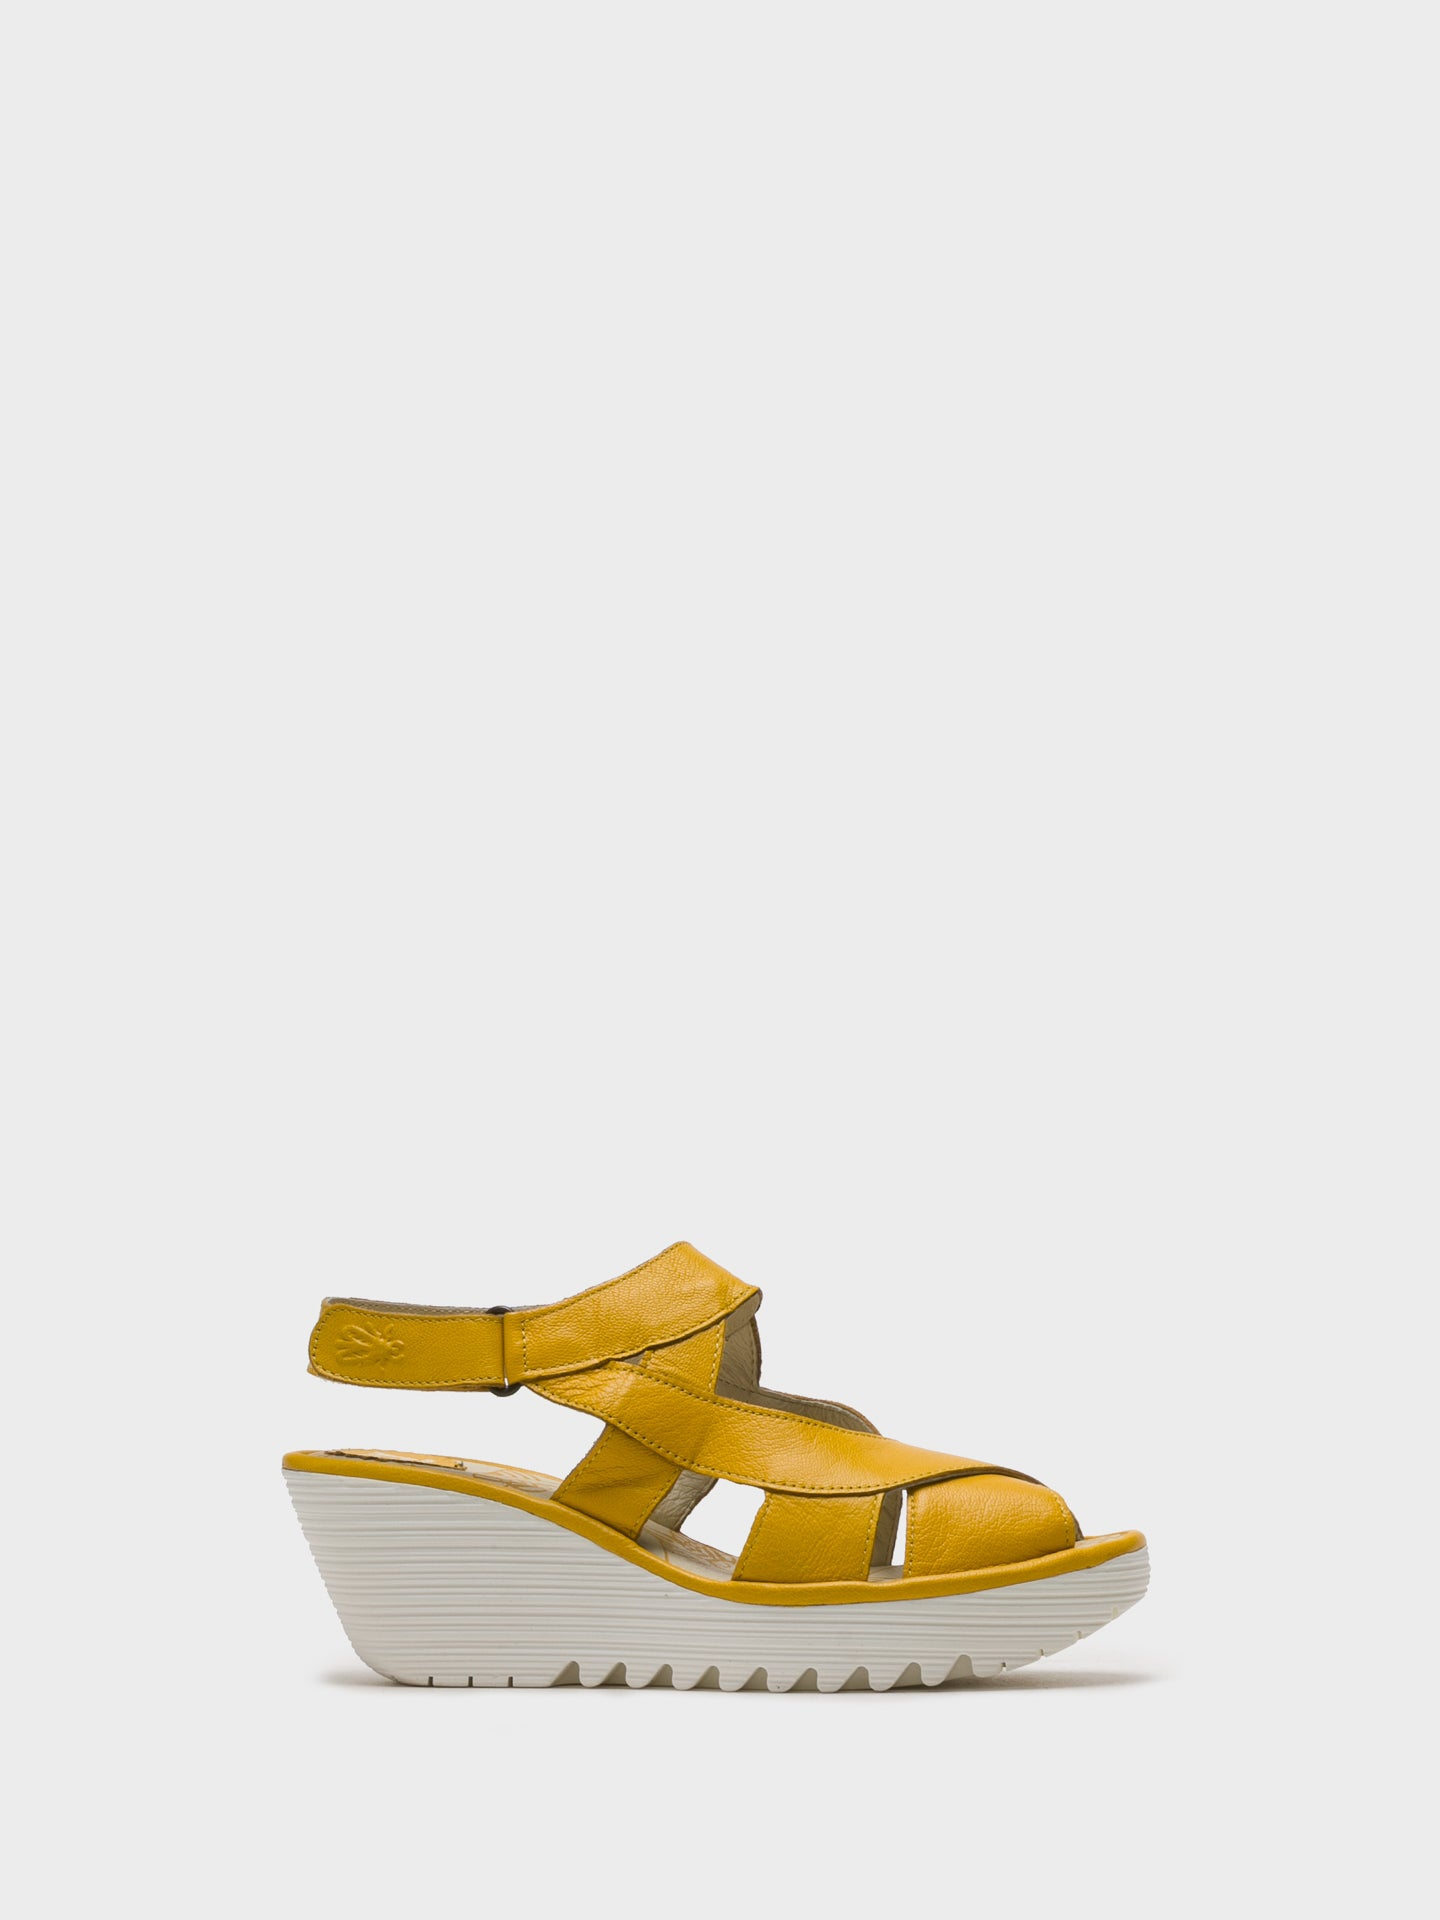 Fly London LightYellow Sling-Back Sandals